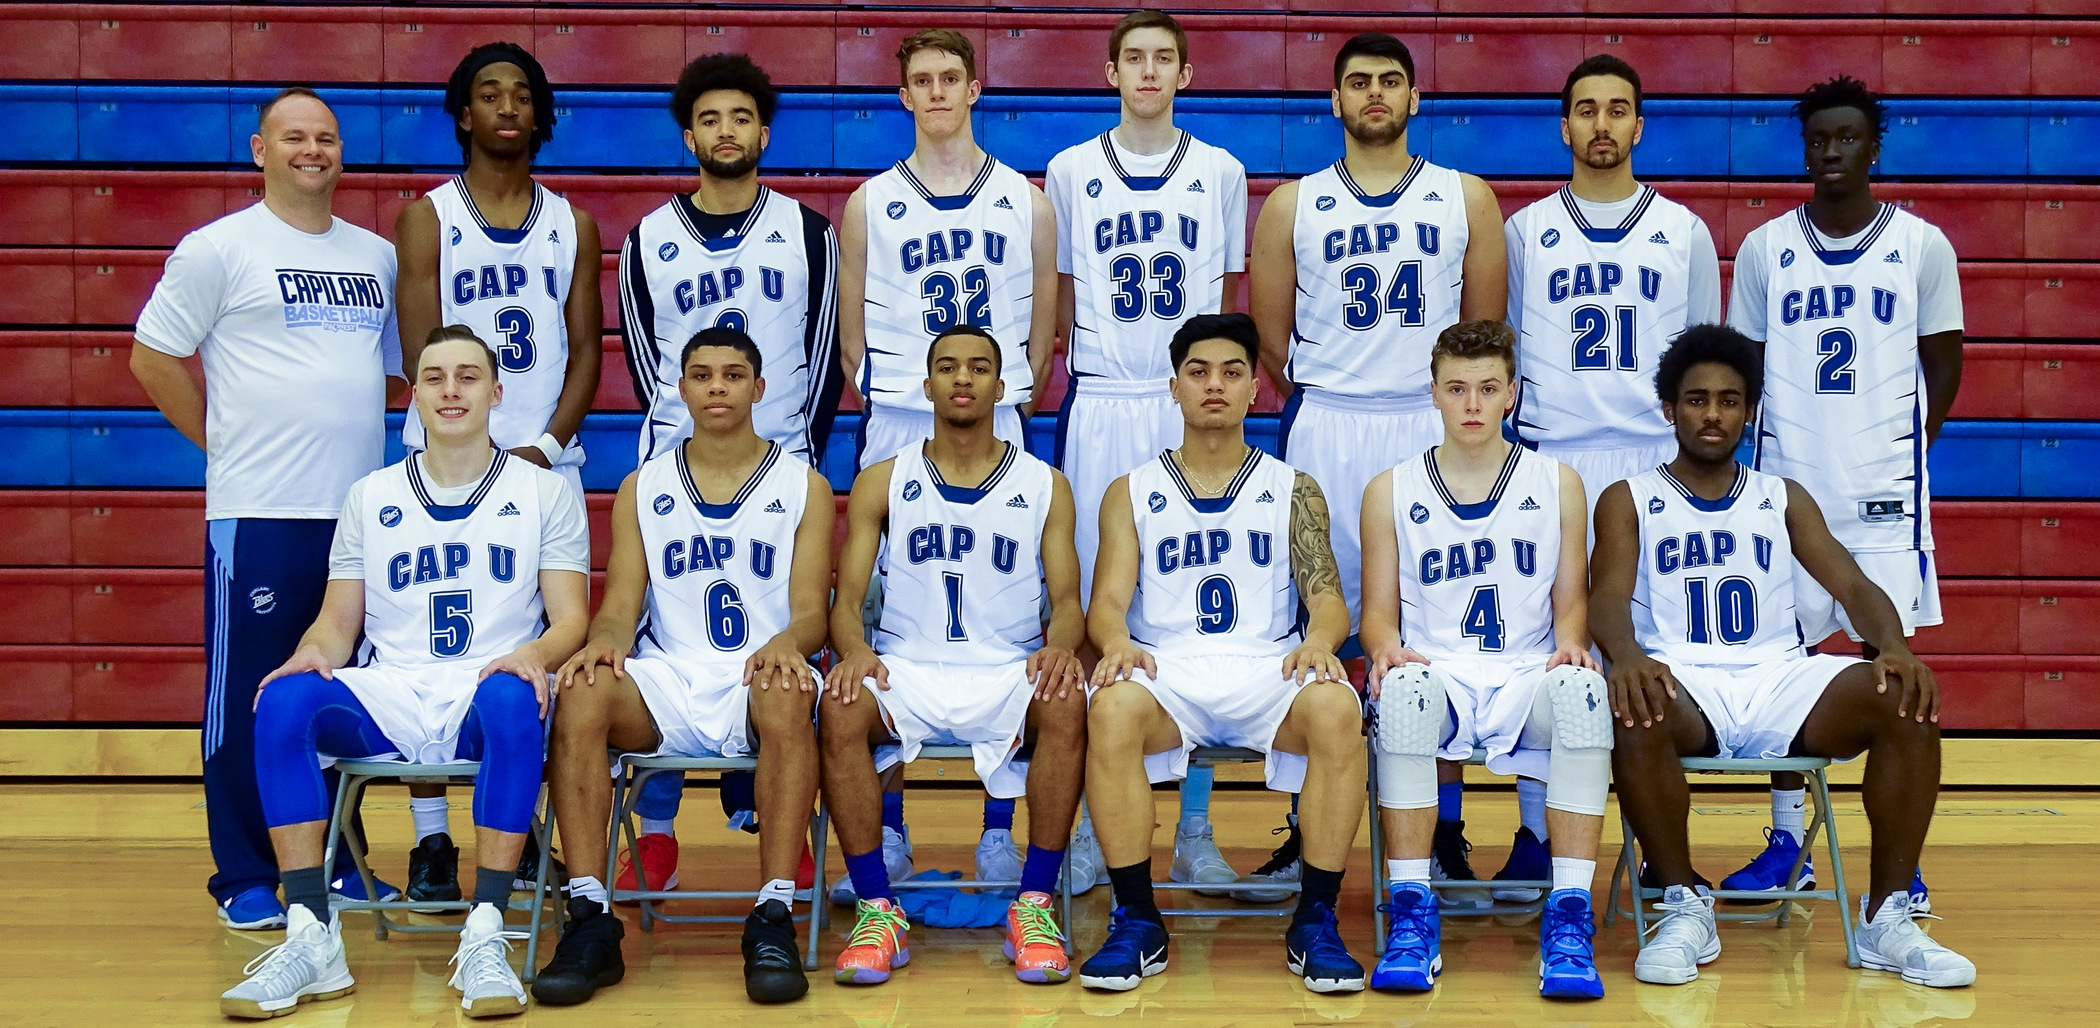 Capilano ready to compete for gold in 2017-18